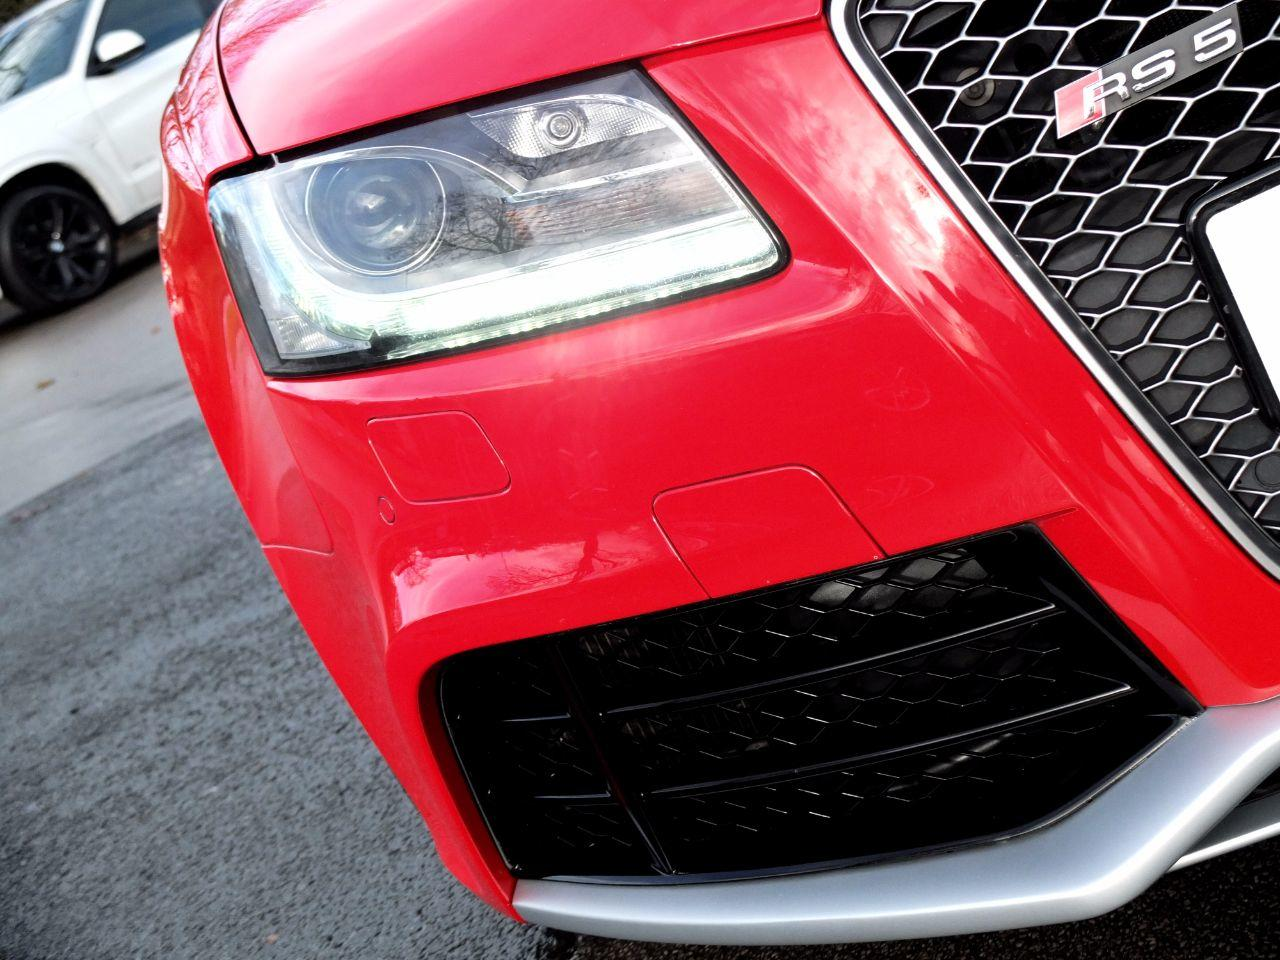 Audi RS5 4.2 FSI quattro (Bucket Seats, Miltek Exhaust, Tech Pack) Coupe Petrol Misano Red Pearl